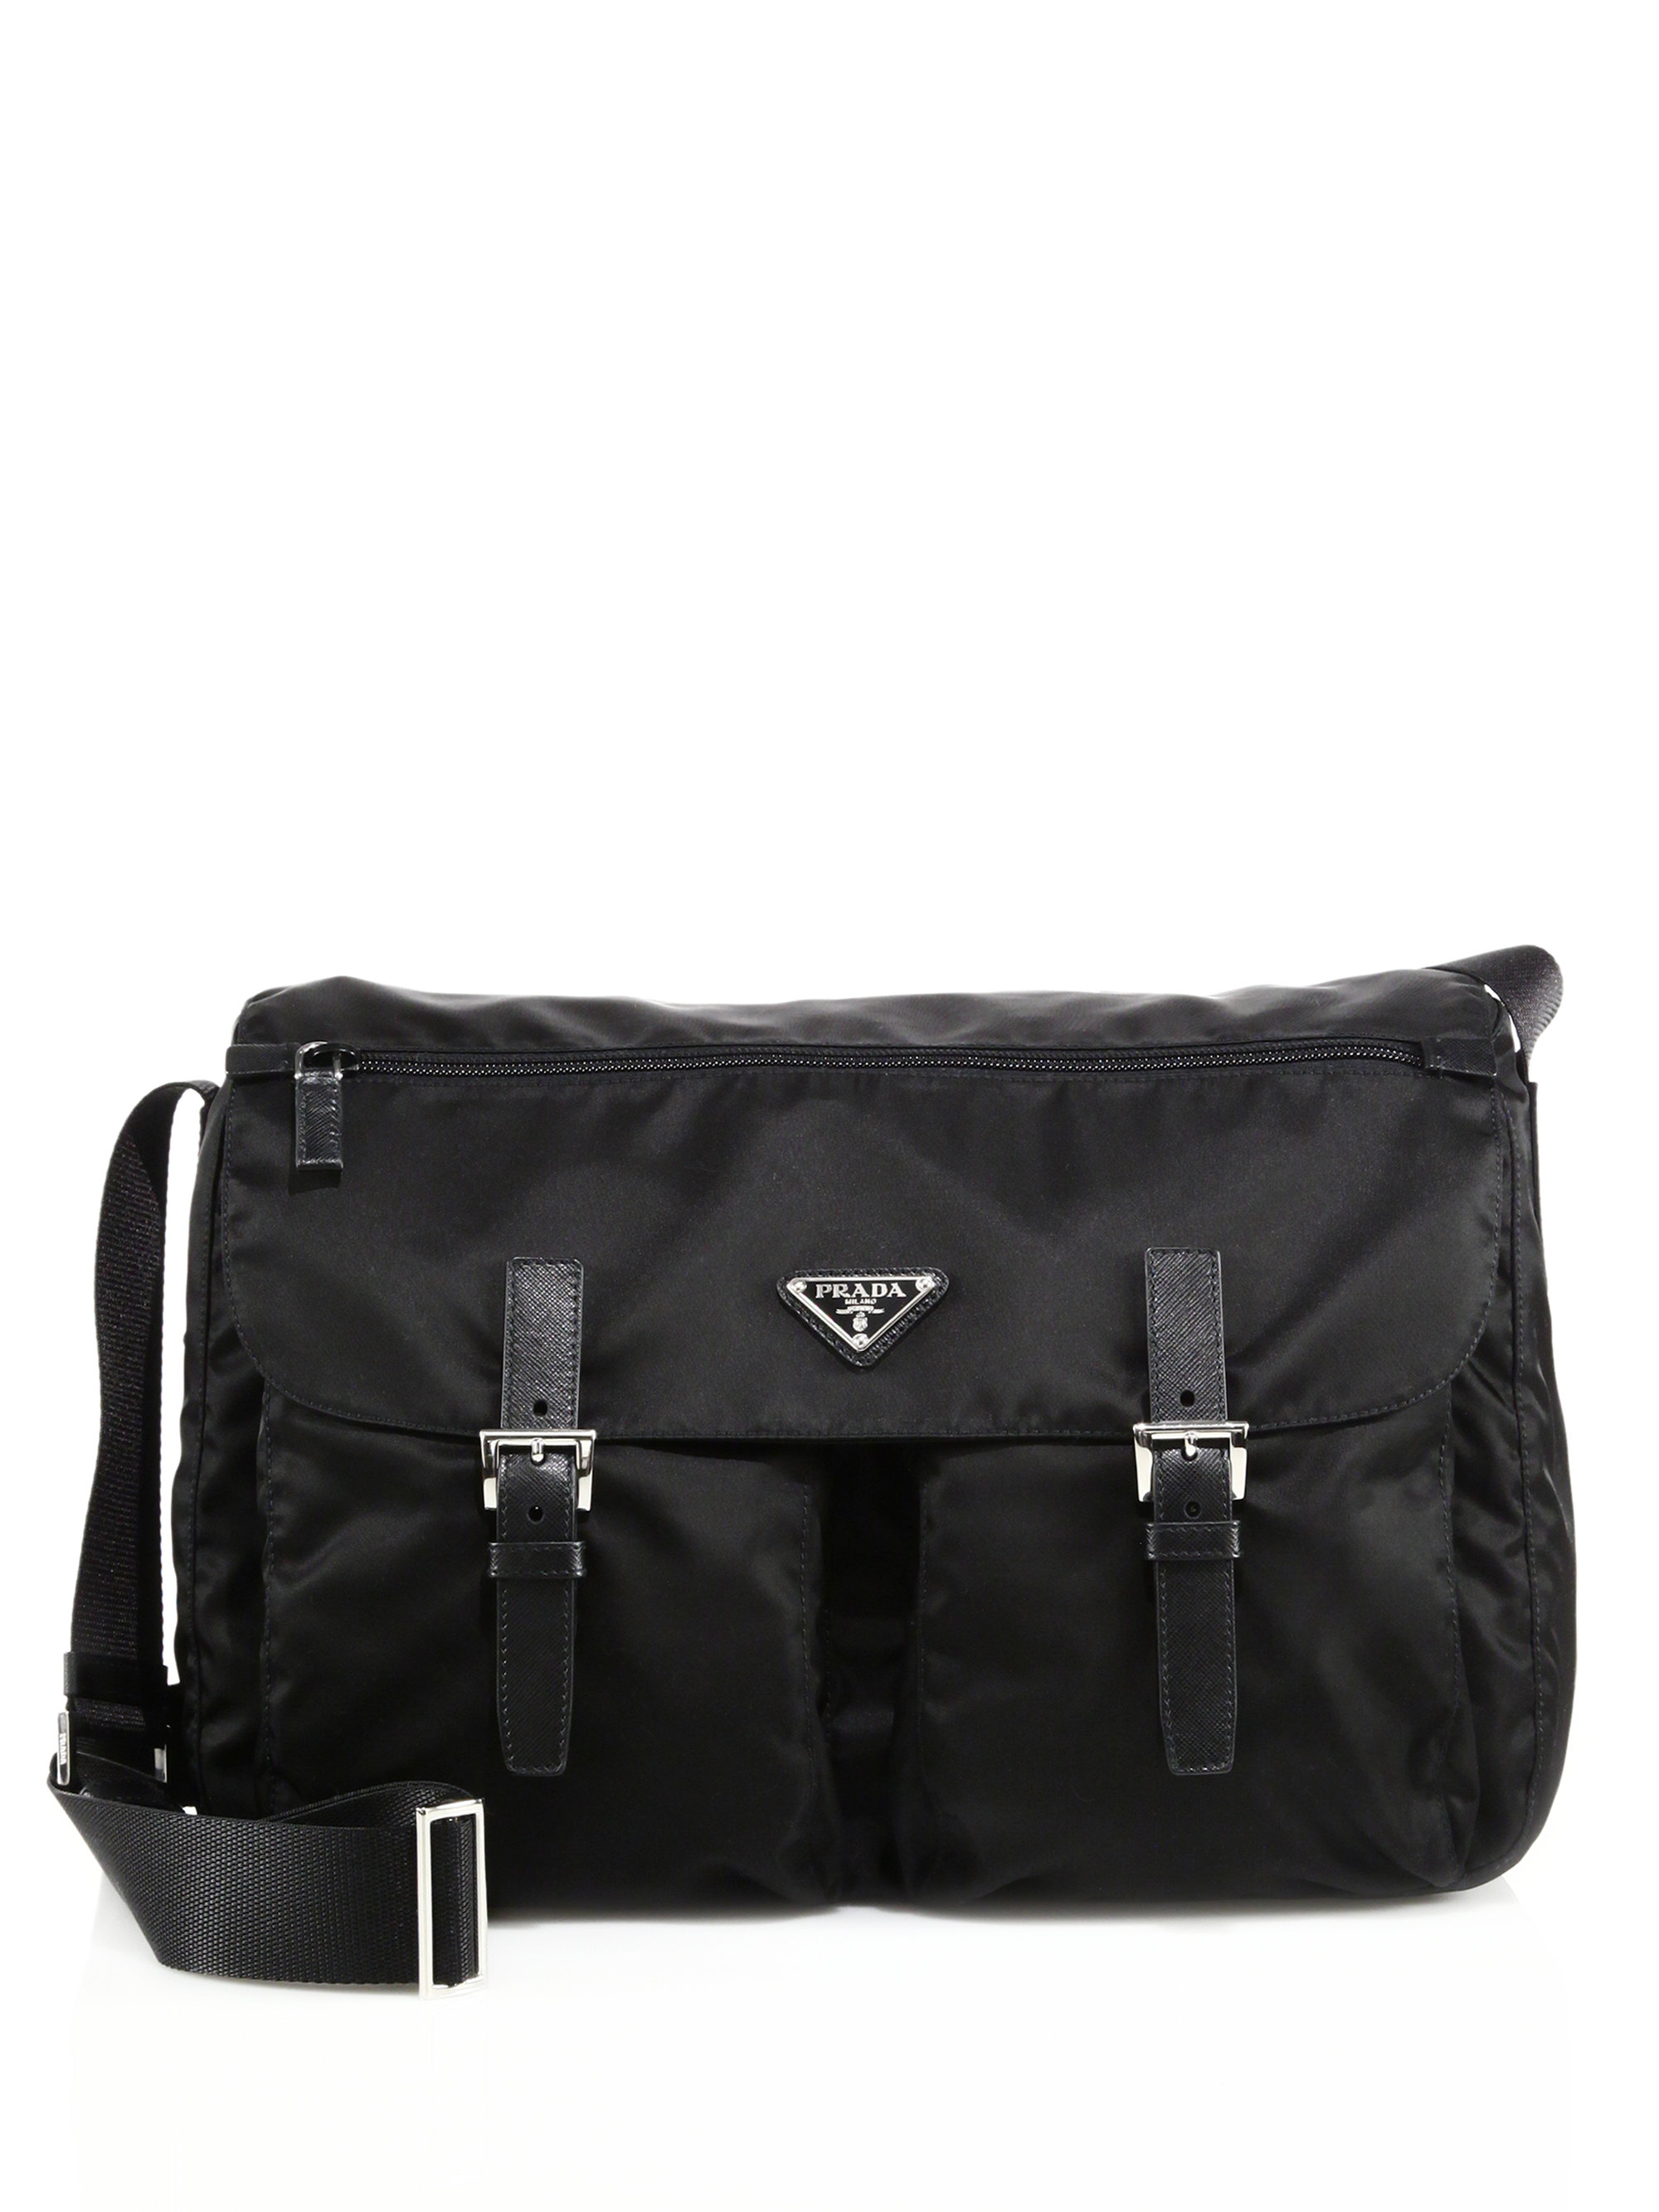 prada saffiano purse forum - Prada Nylon & Leather Messenger Bag in Black | Lyst